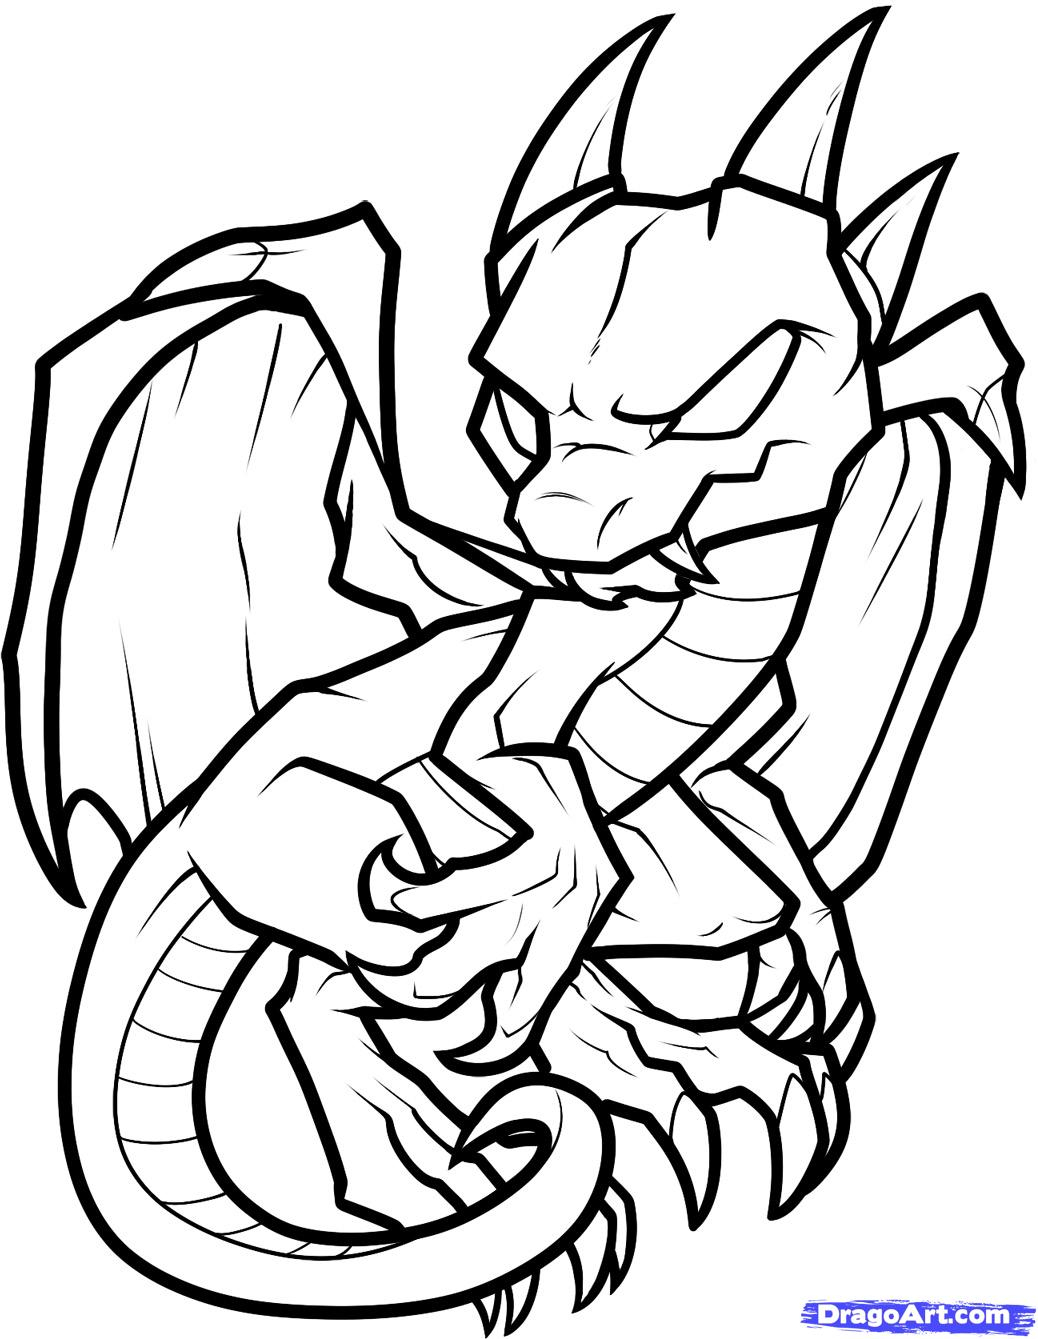 1038x1339 Baby Dragon Drawing 8. How To Draw An Anthro Baby Dragon, Anthro